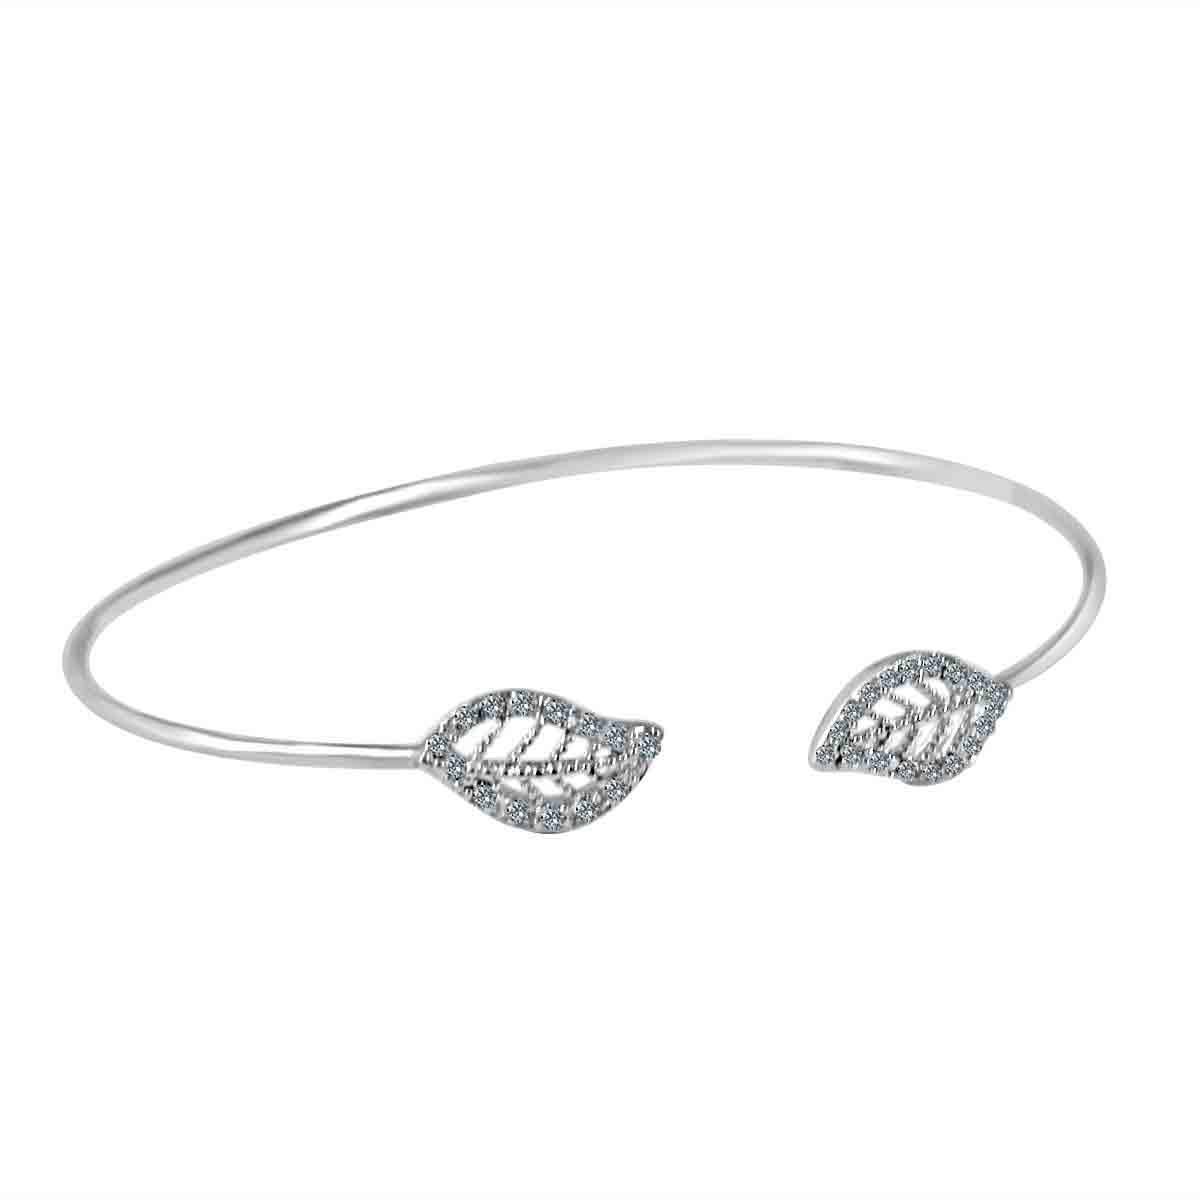 Fine Open end Pave Leaf Bangle set w/Zirconite Cubic Zirconia. 702B1202